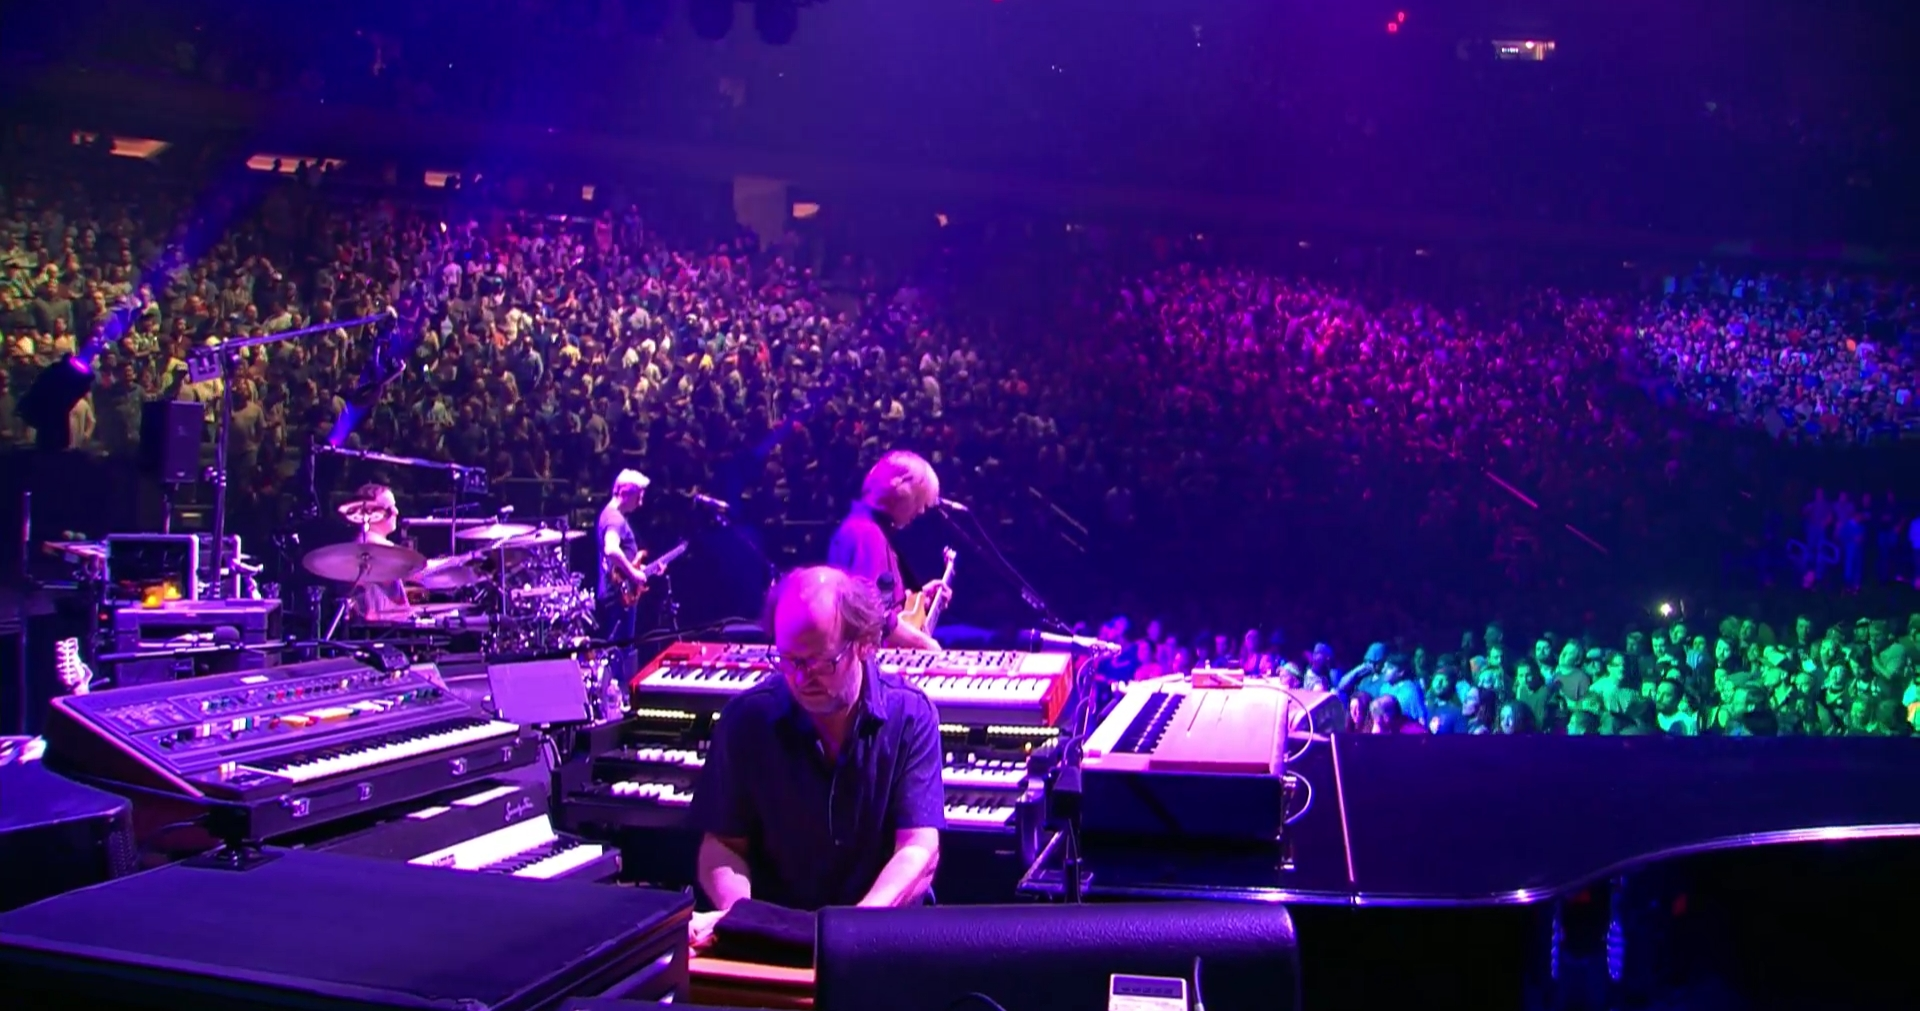 Night 3 At Msg Phish Continues 2016 New Year 39 S Run In New York Setlist Videos The Skinny